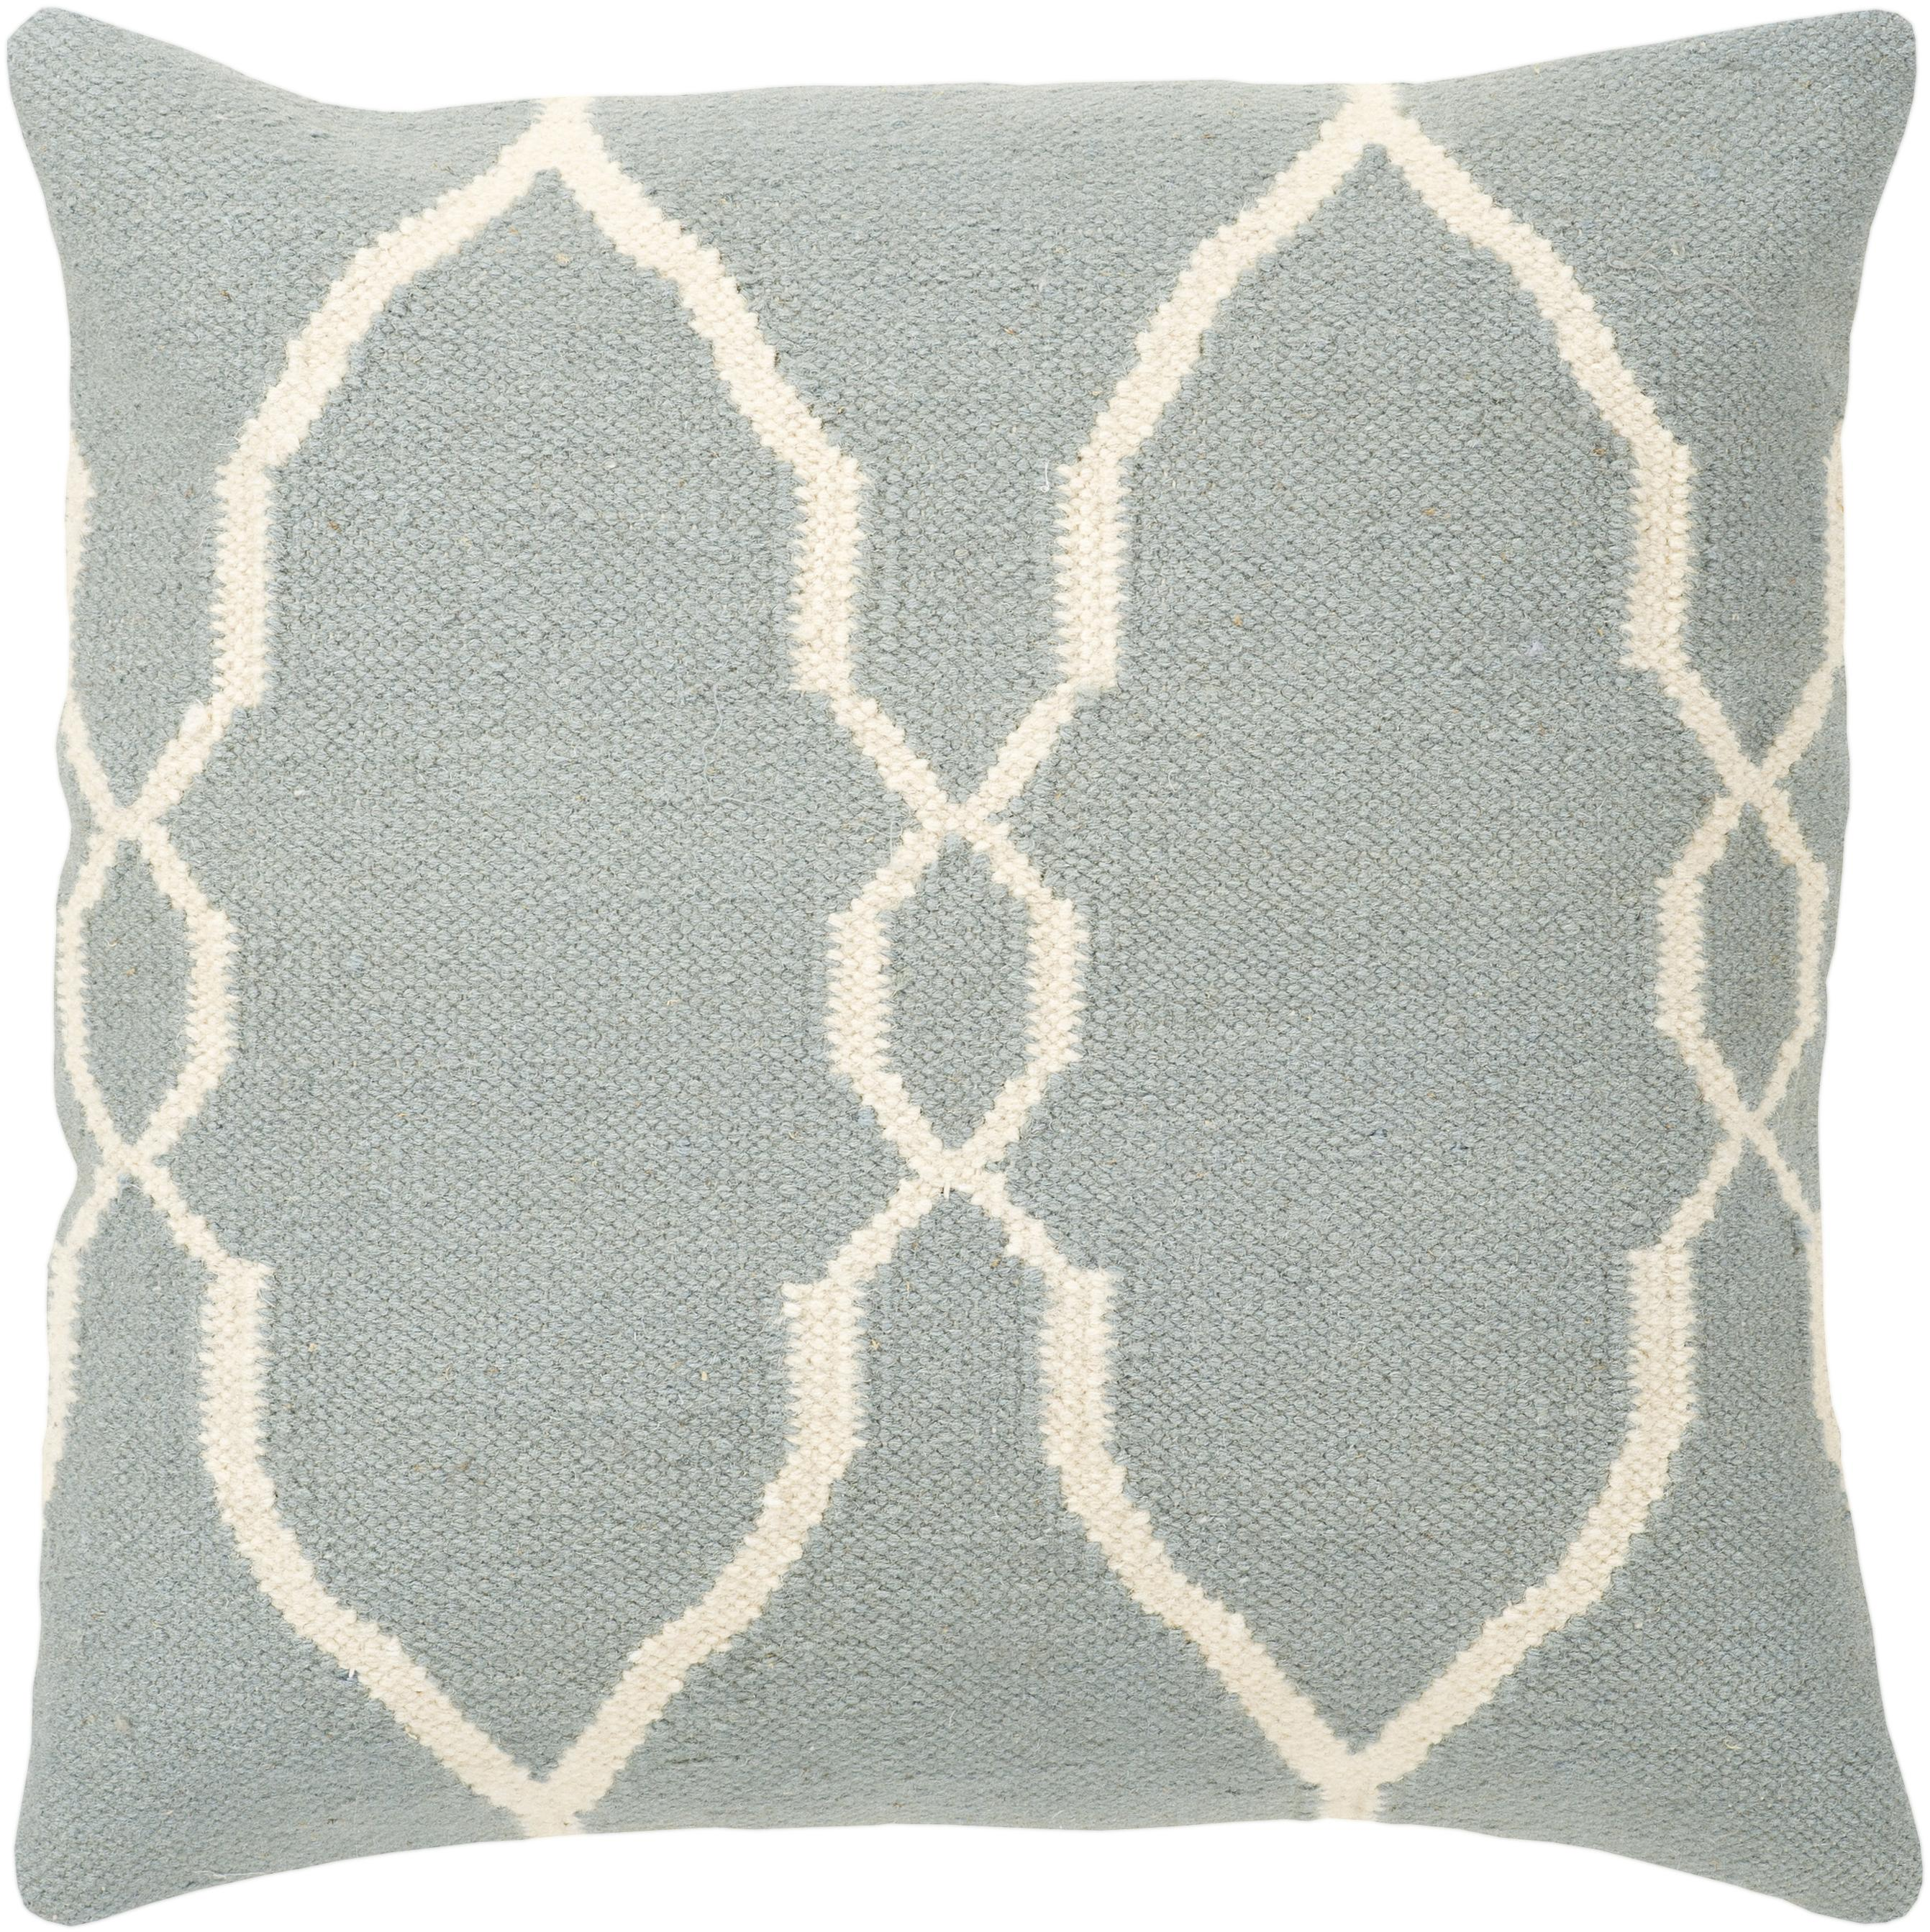 "Surya Pillows 22"" x 22"" Pillow - Item Number: FA022-2222P"